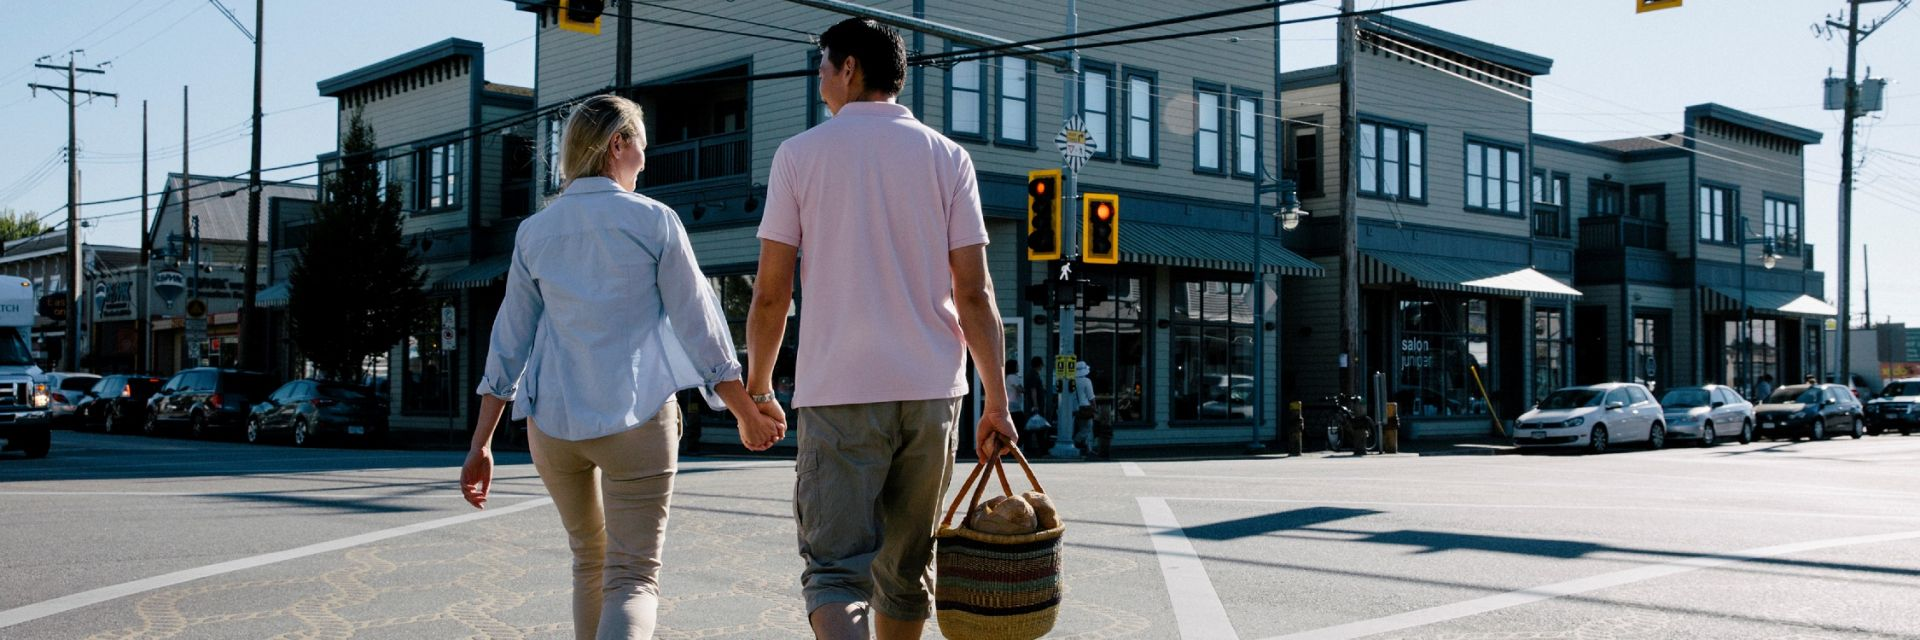 A couple walking through the intersection of Moncton & No 2 Road in Steveston Village